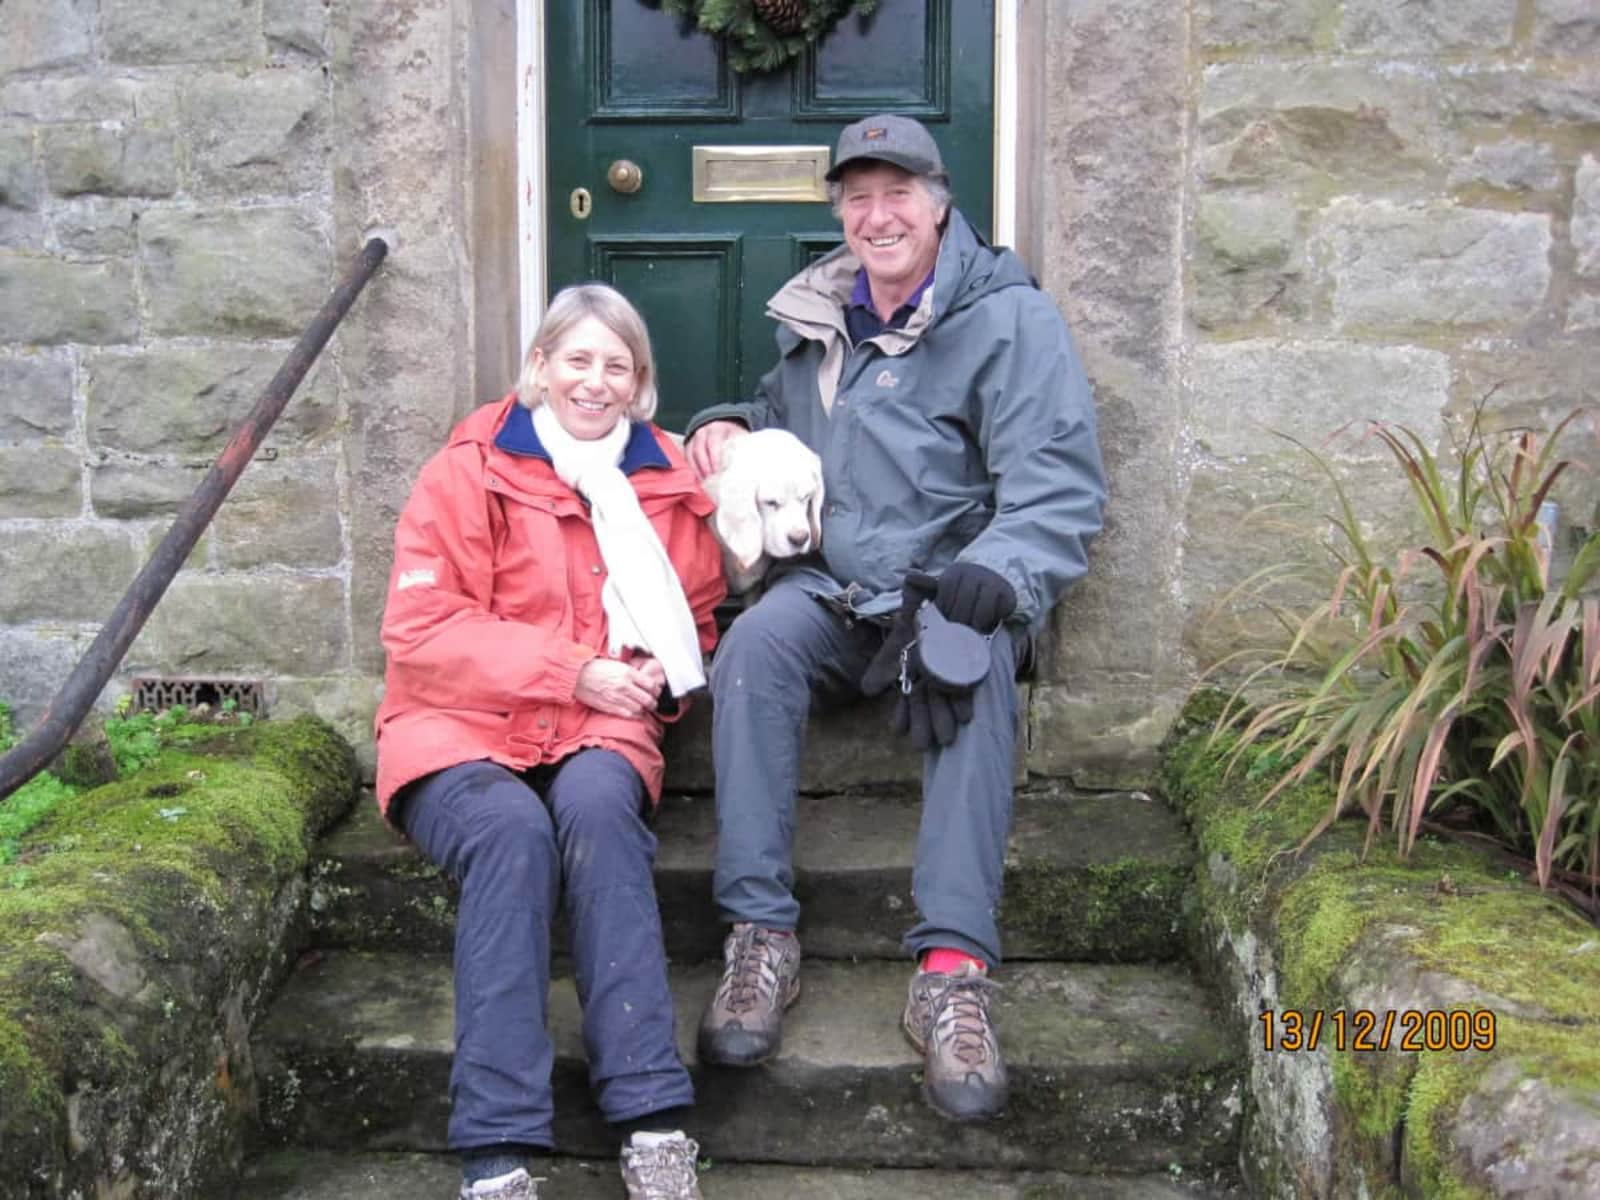 Barbara & Robert from Newcastle upon Tyne, United Kingdom